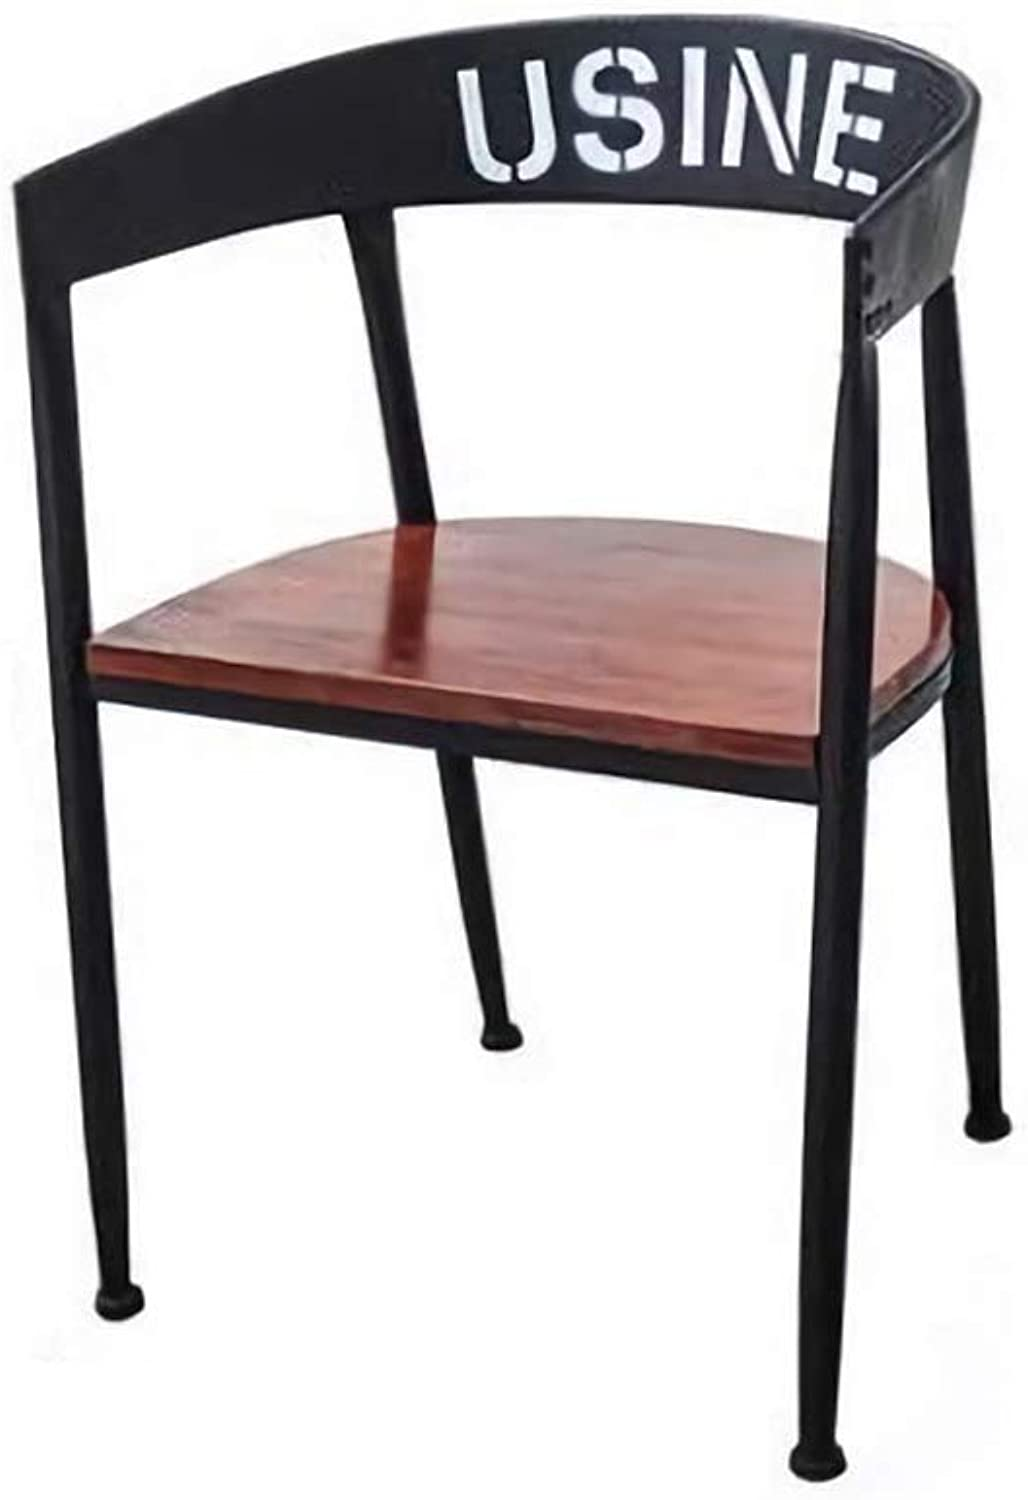 Kitchen Pub Bar Stools Set Black Metal Frame Solid Wood Seat Industrial Style (Size   L53W48H45-75cm)